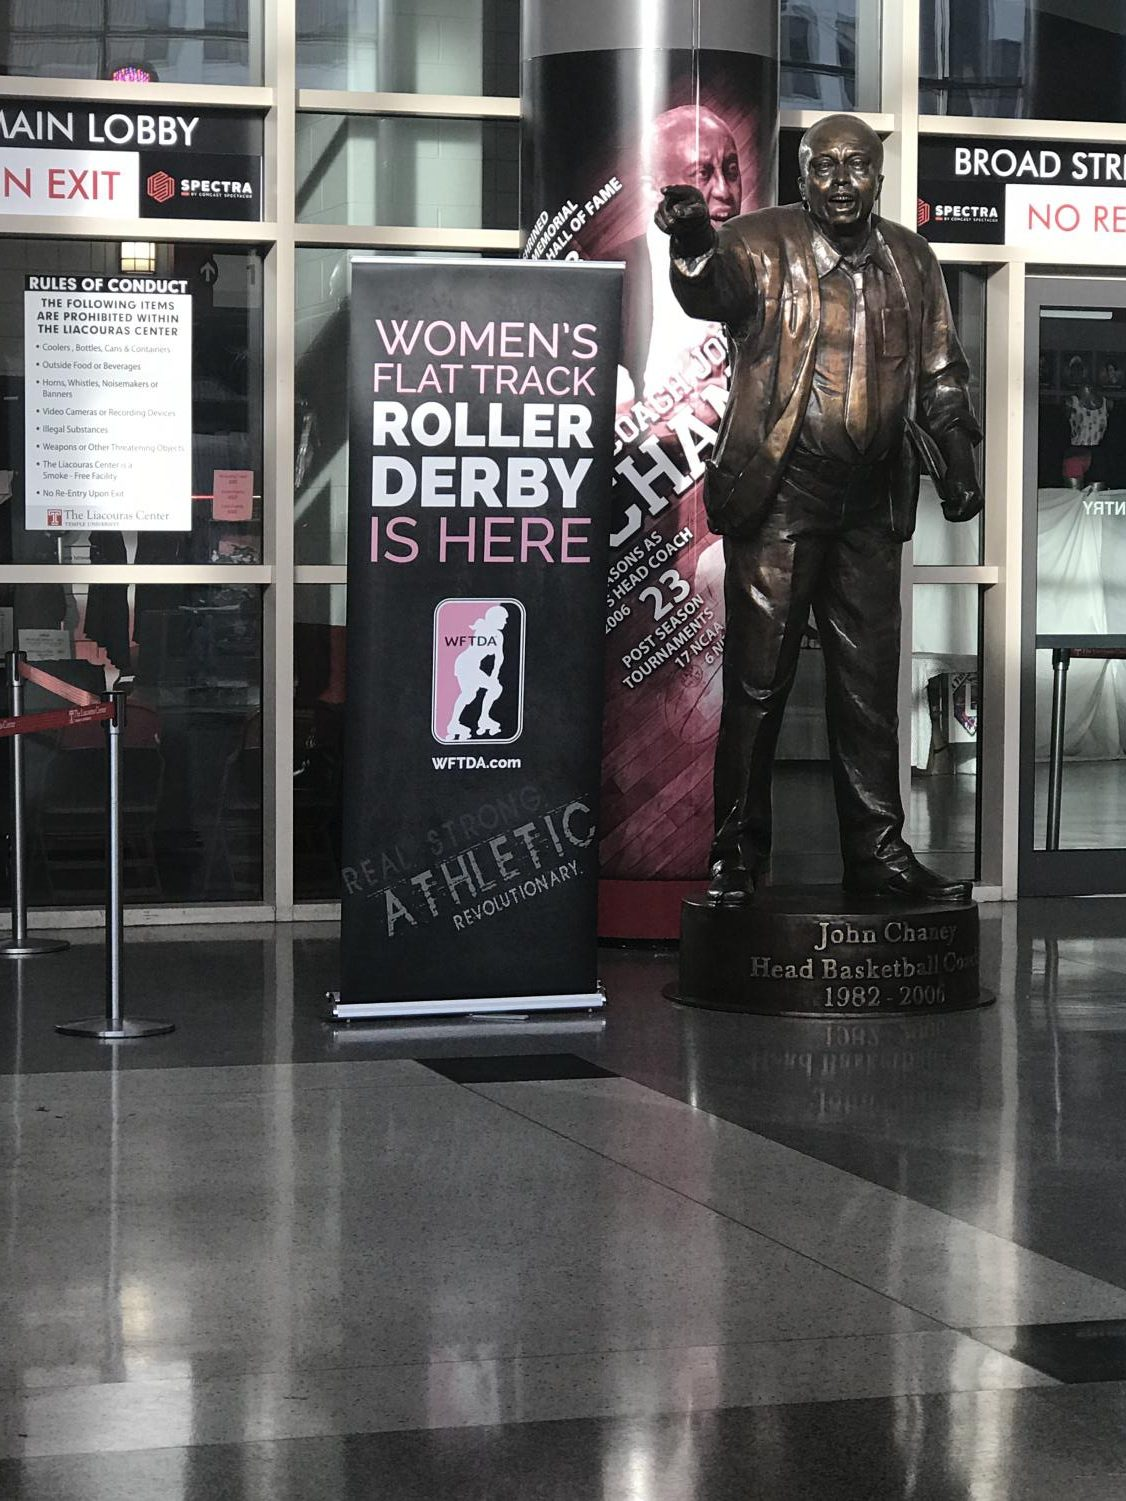 This is a sign that was displayed at the WFTDA International Championships.